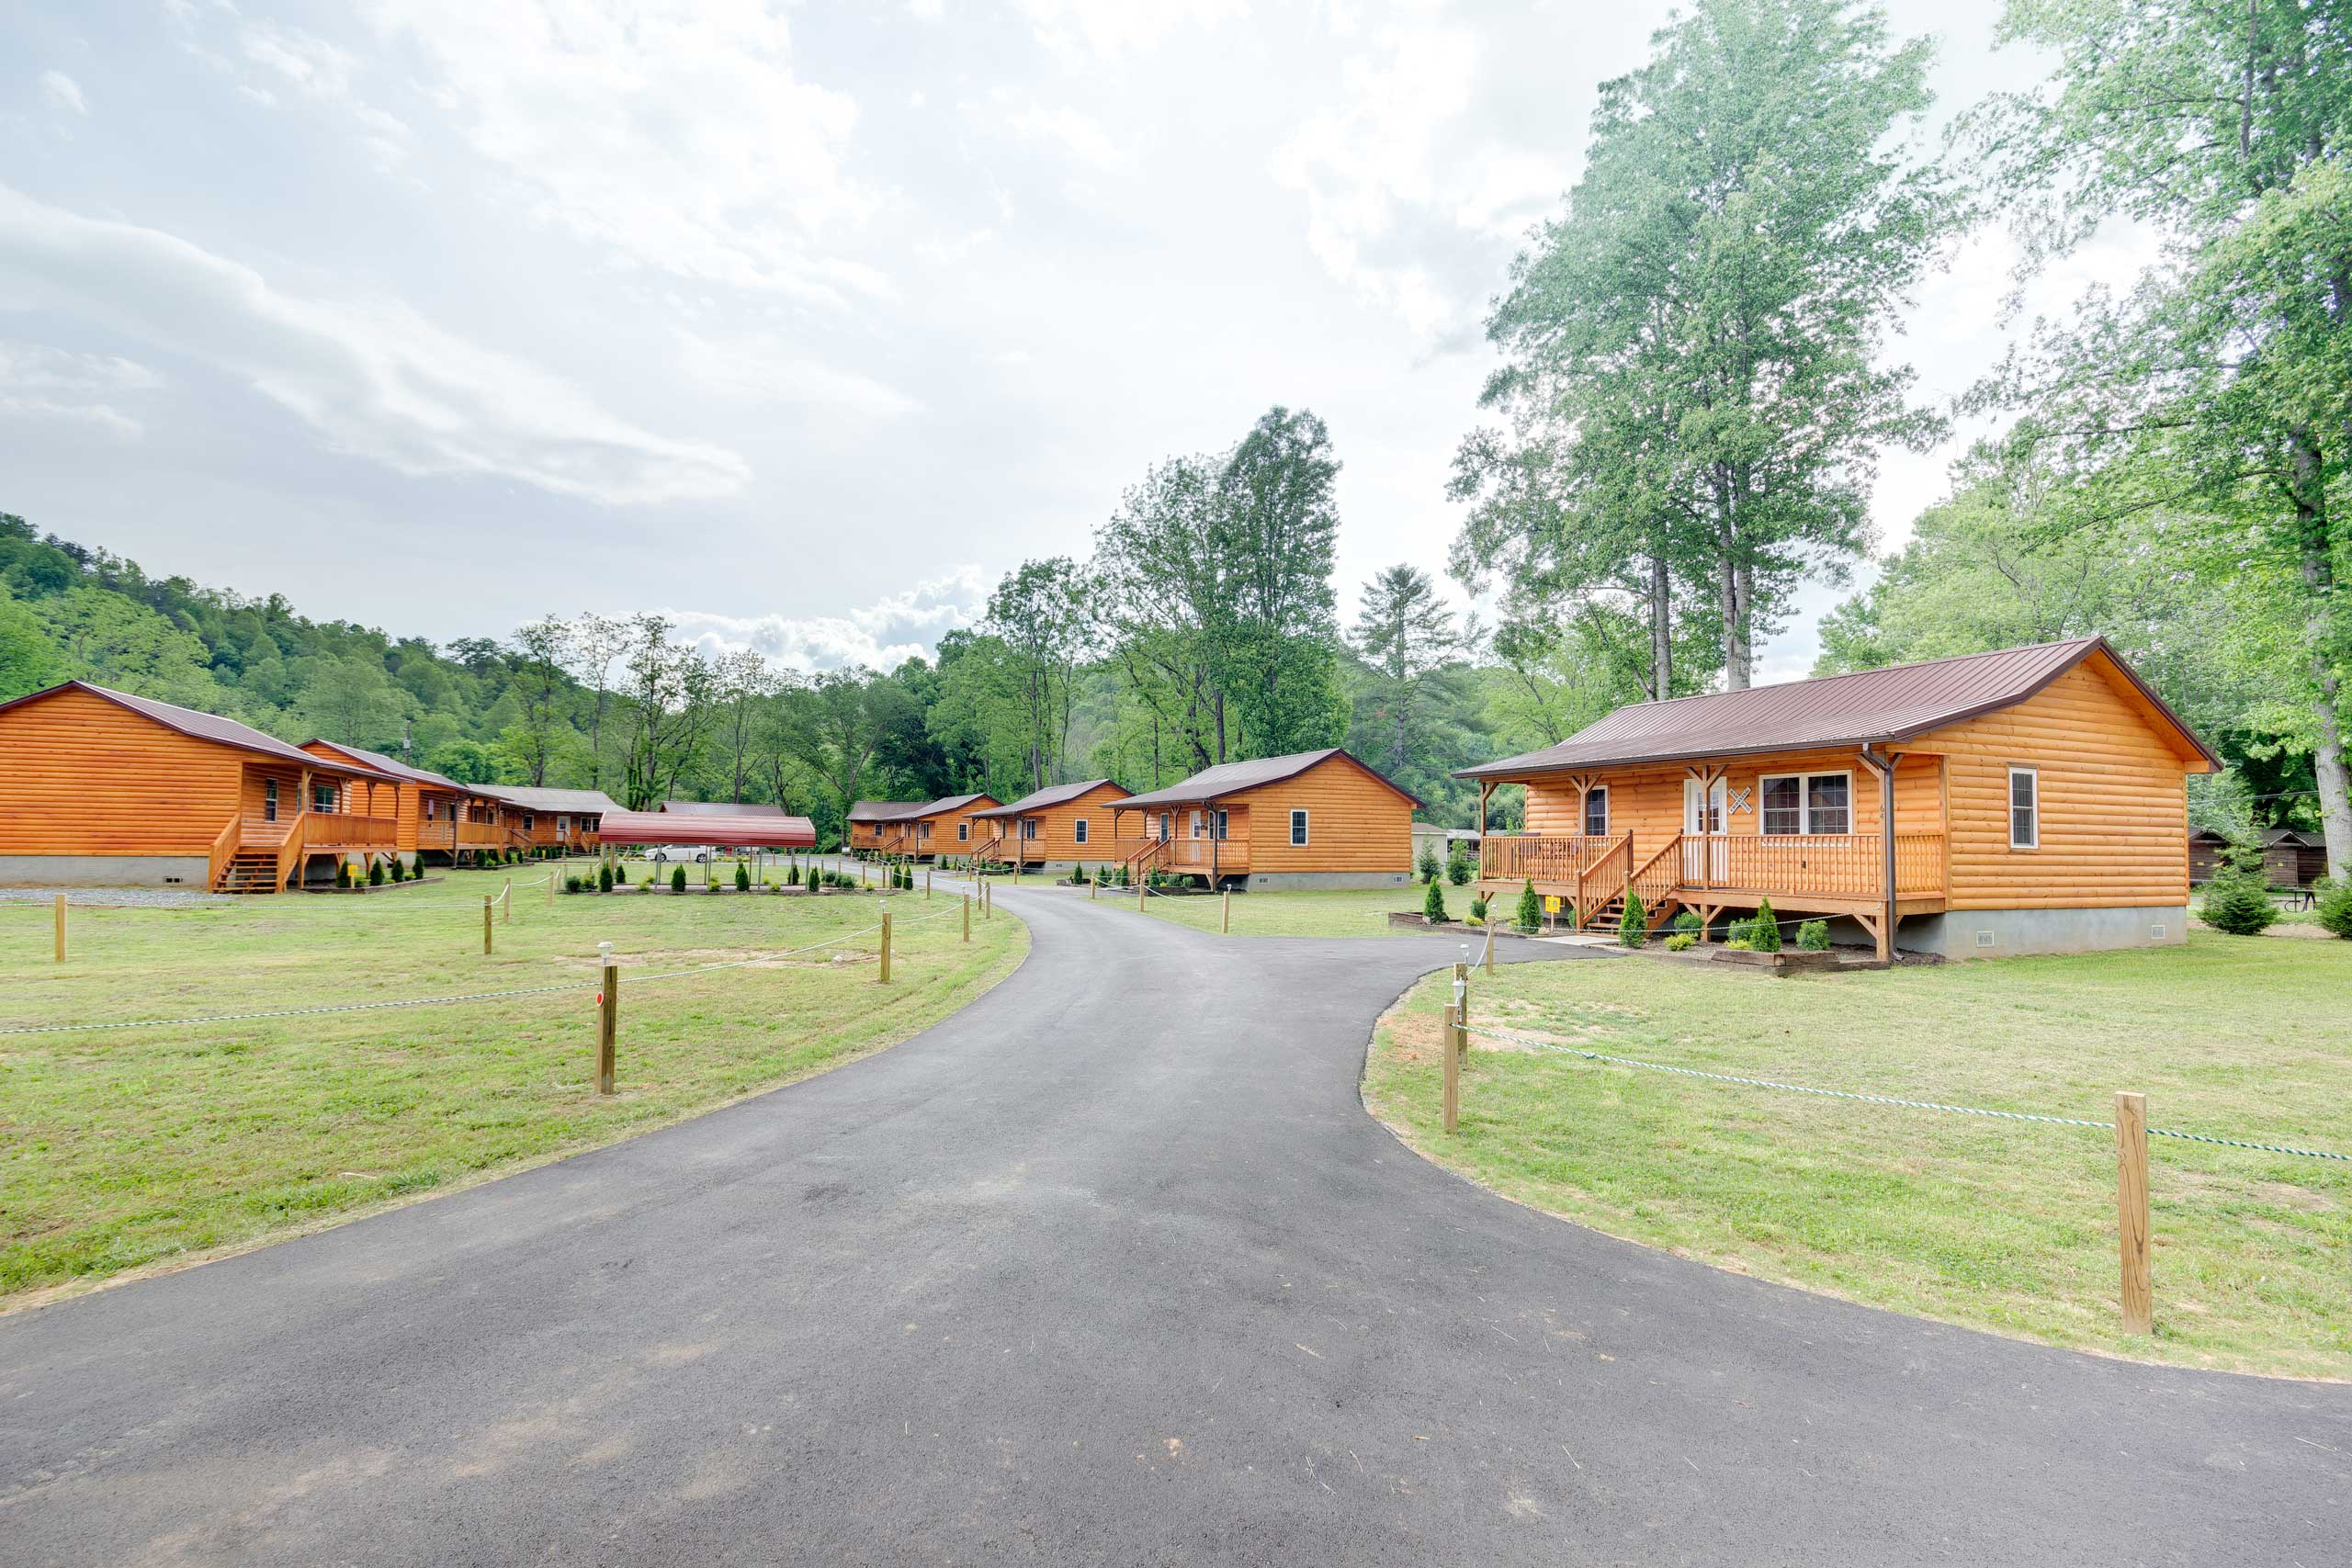 Traveling with a large party? Rent the additional cabins located just next door.